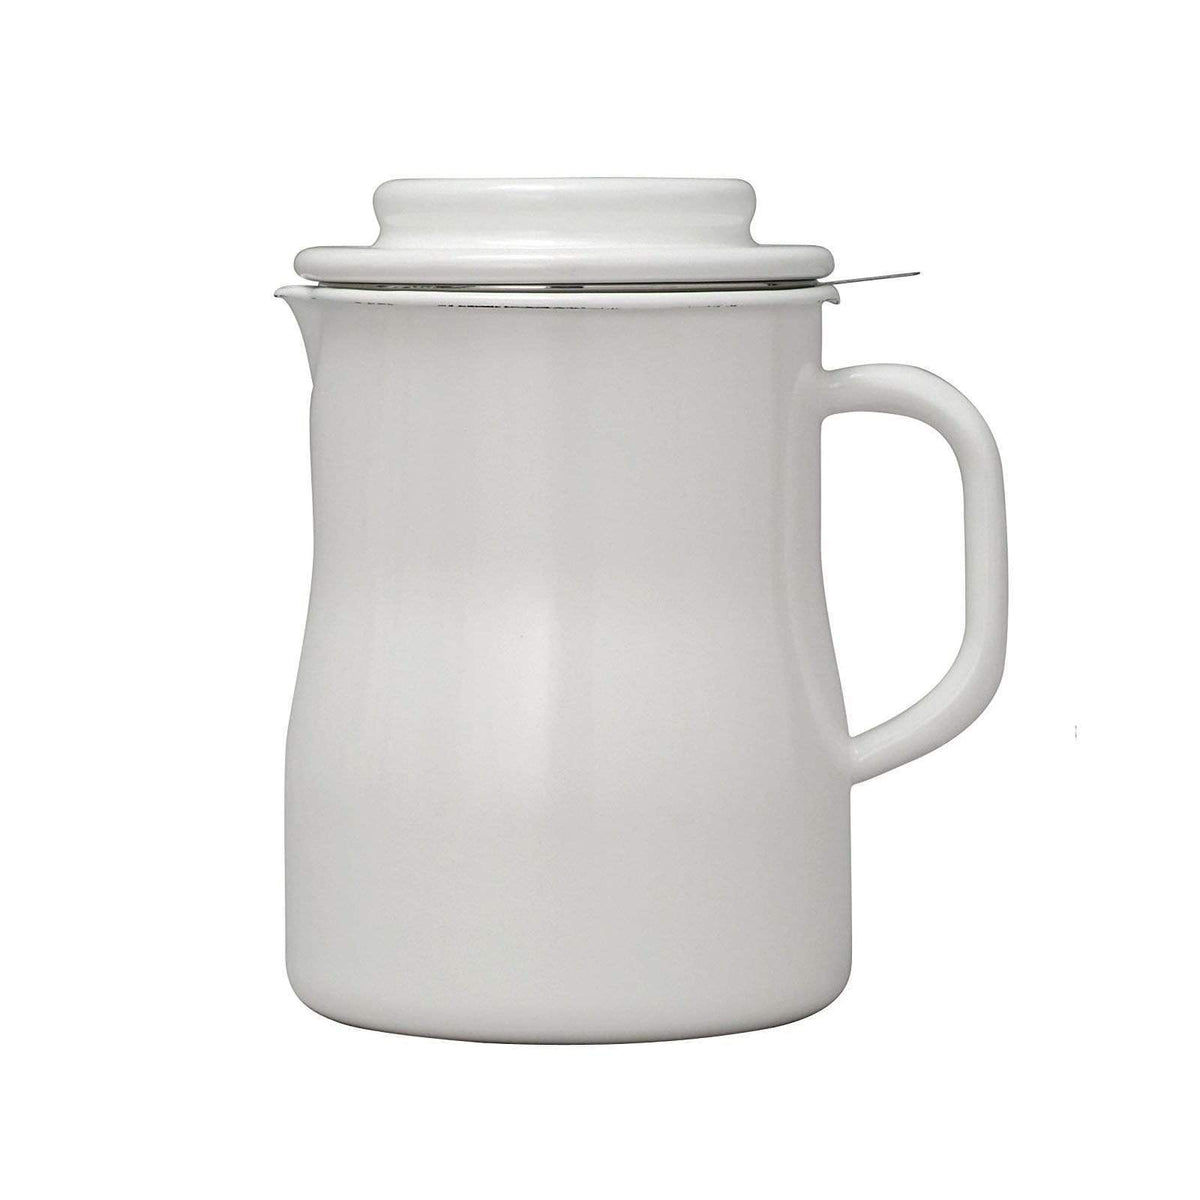 Noda Horo Enamel Oil Pot 2.3 L Oil Storage Containers